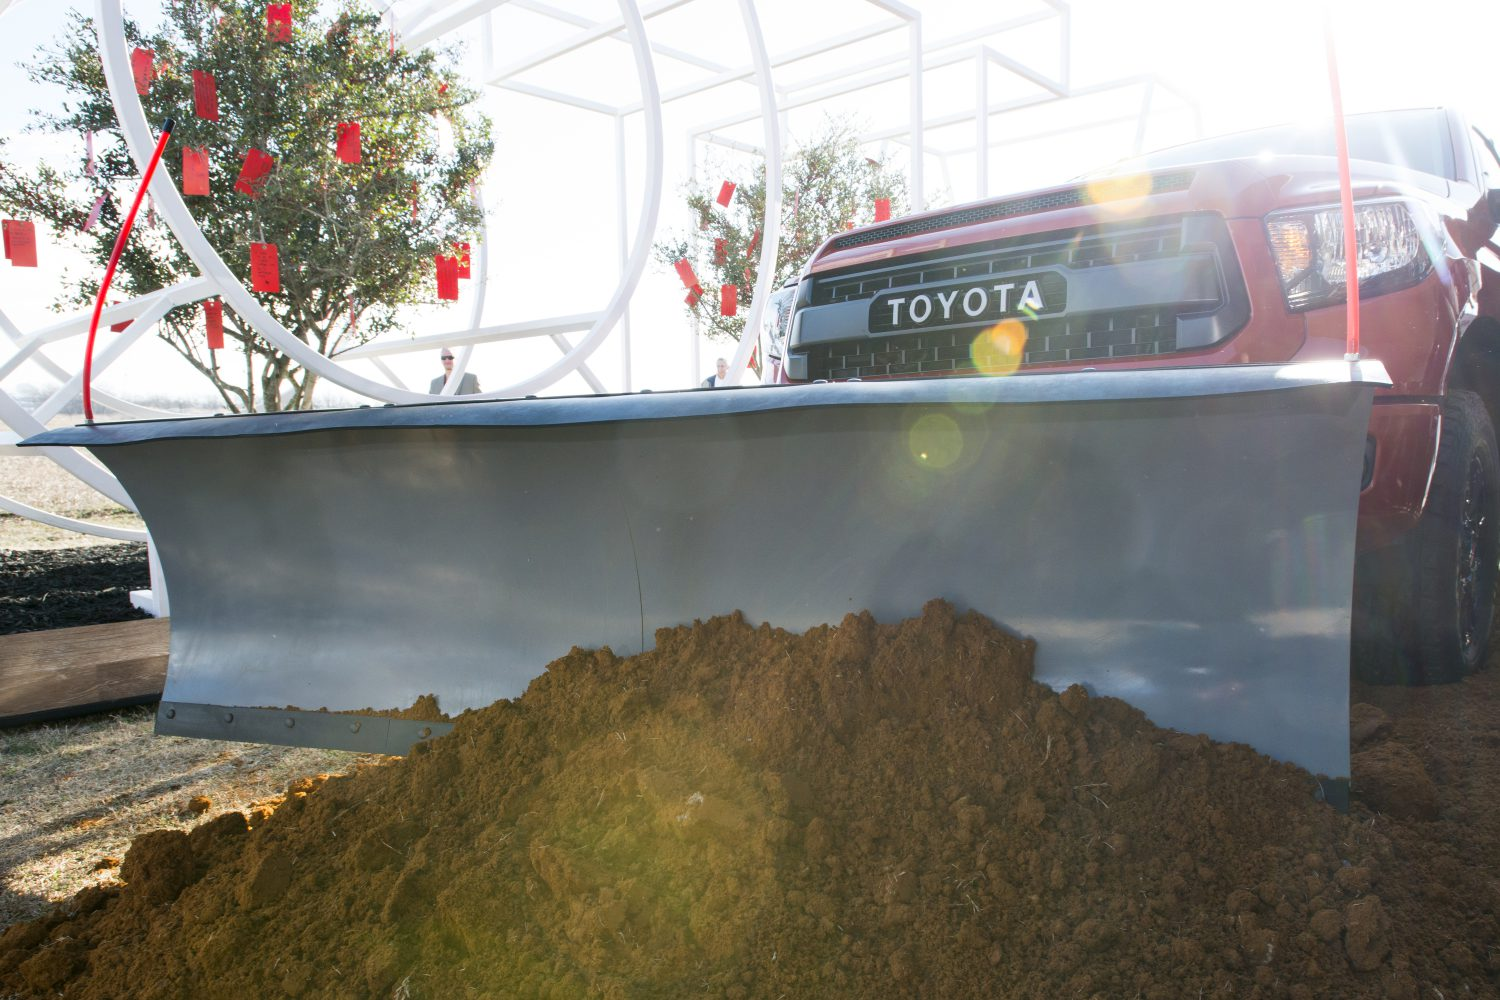 Toyota Of Plano >> Toyota Plows Forward In Plano Breaks Ground On New